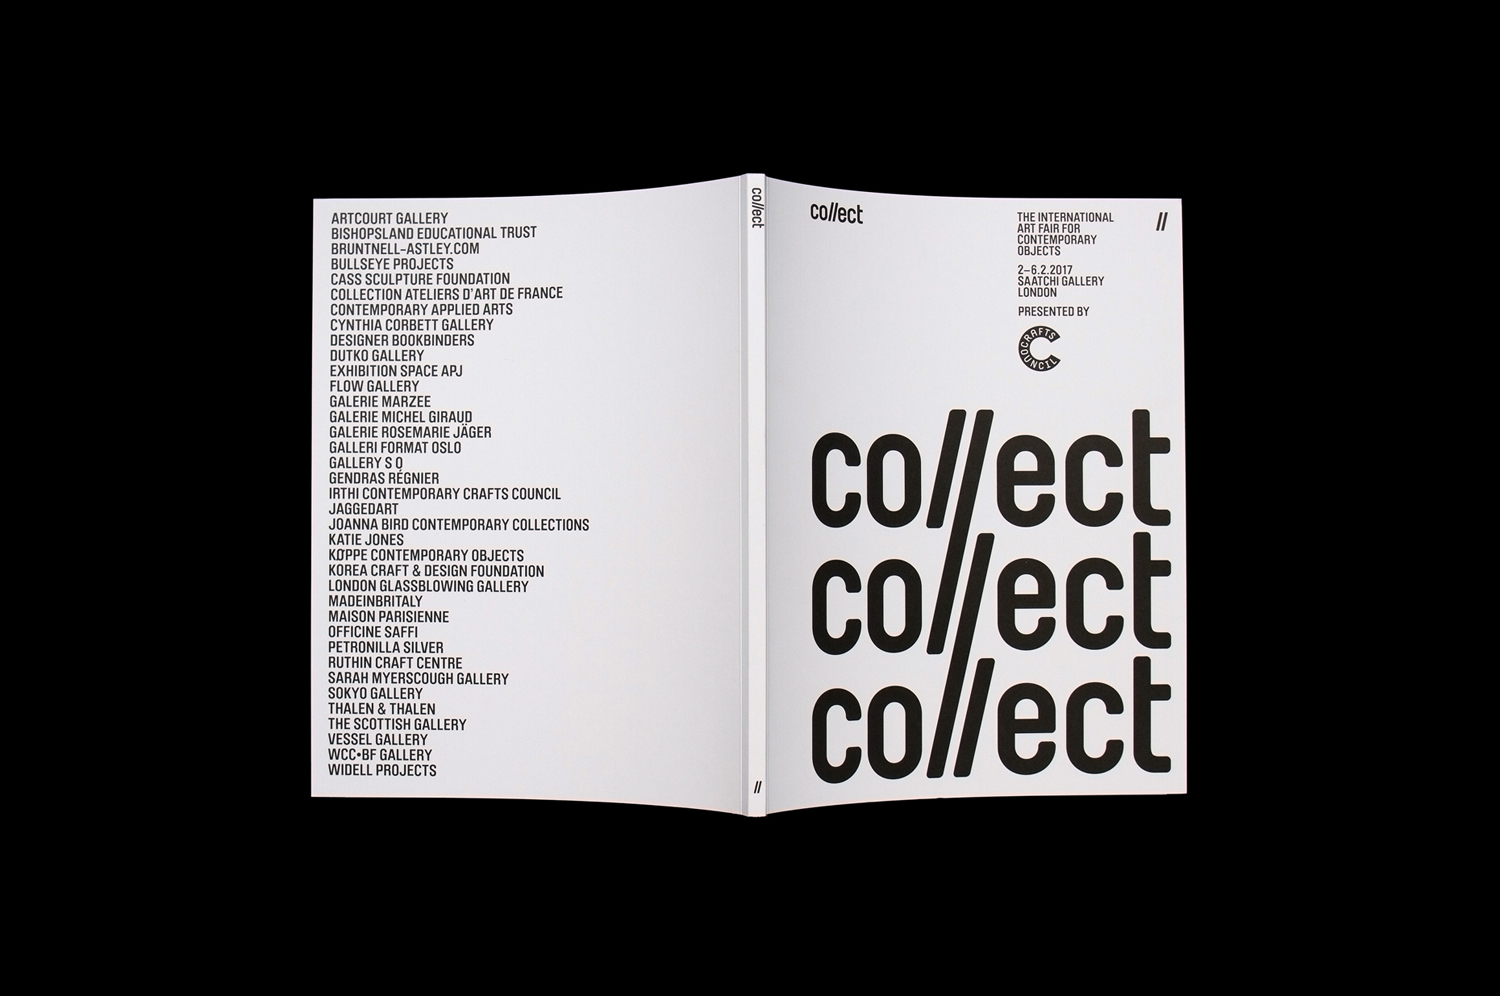 Brand identity and catalogue for contemporary international art fair Collect, designed by Spin, London, UK